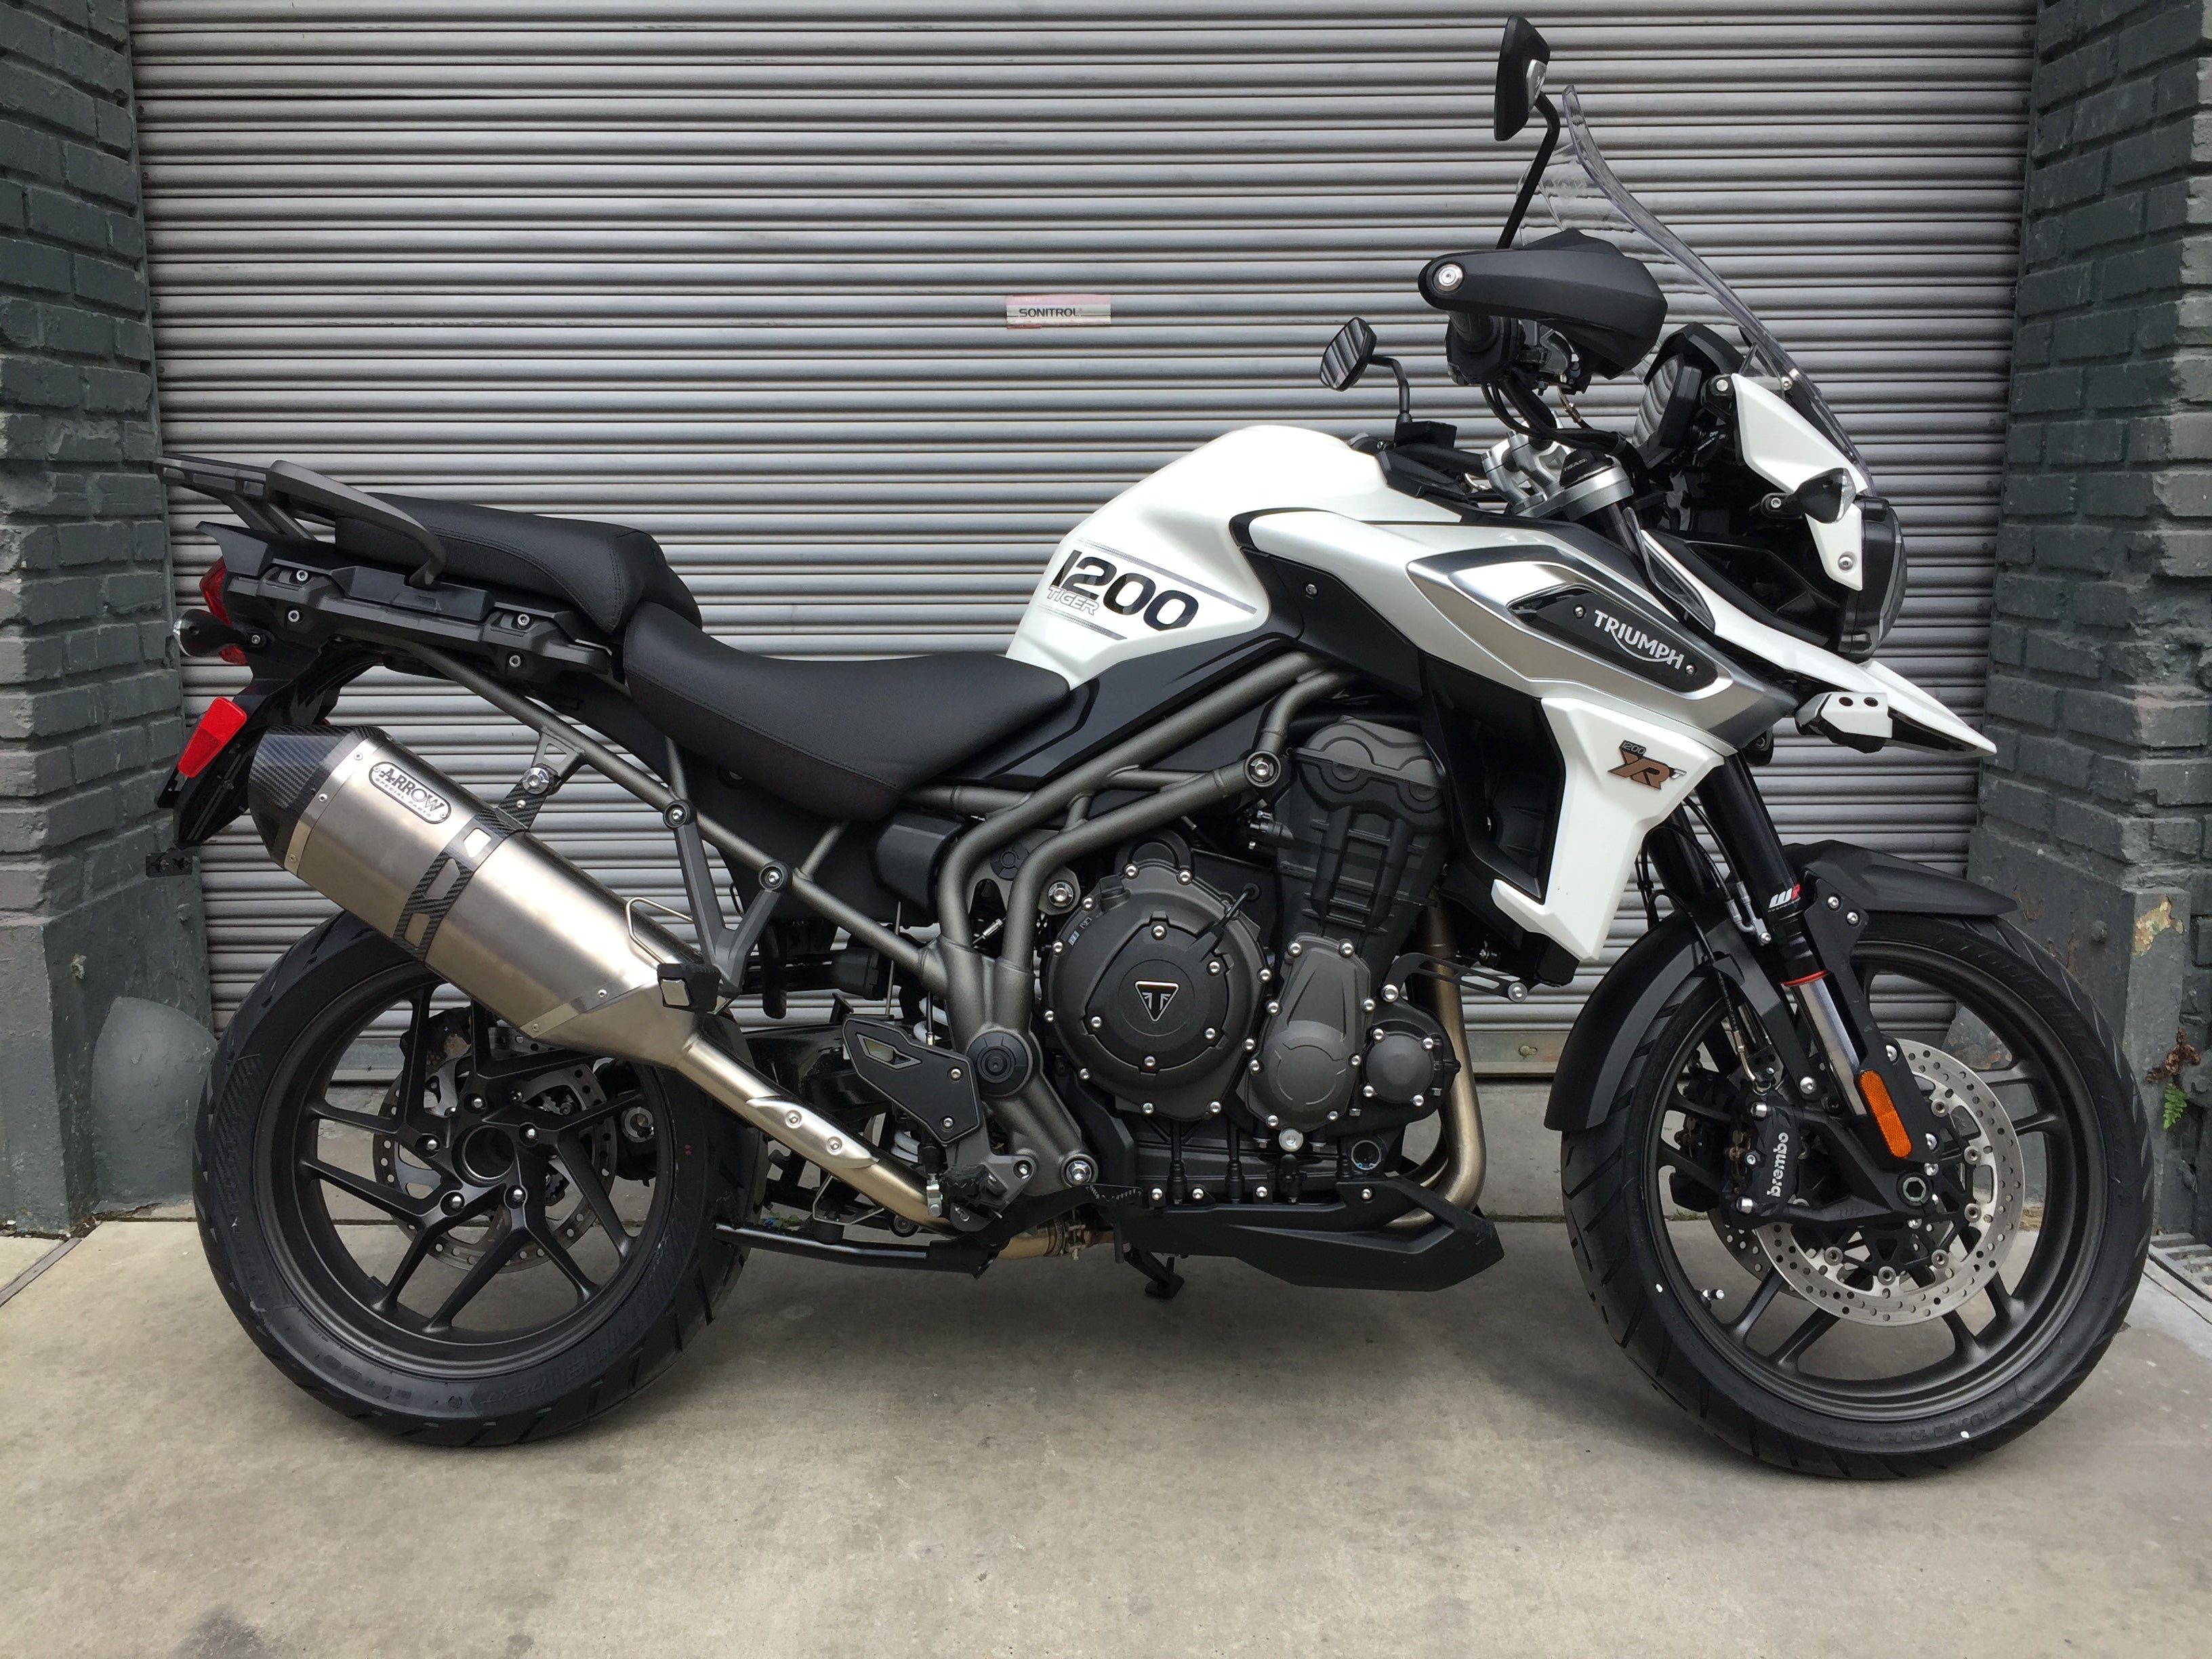 2018 Triumph Tiger 1200 Xrt Crystal White The Transportation